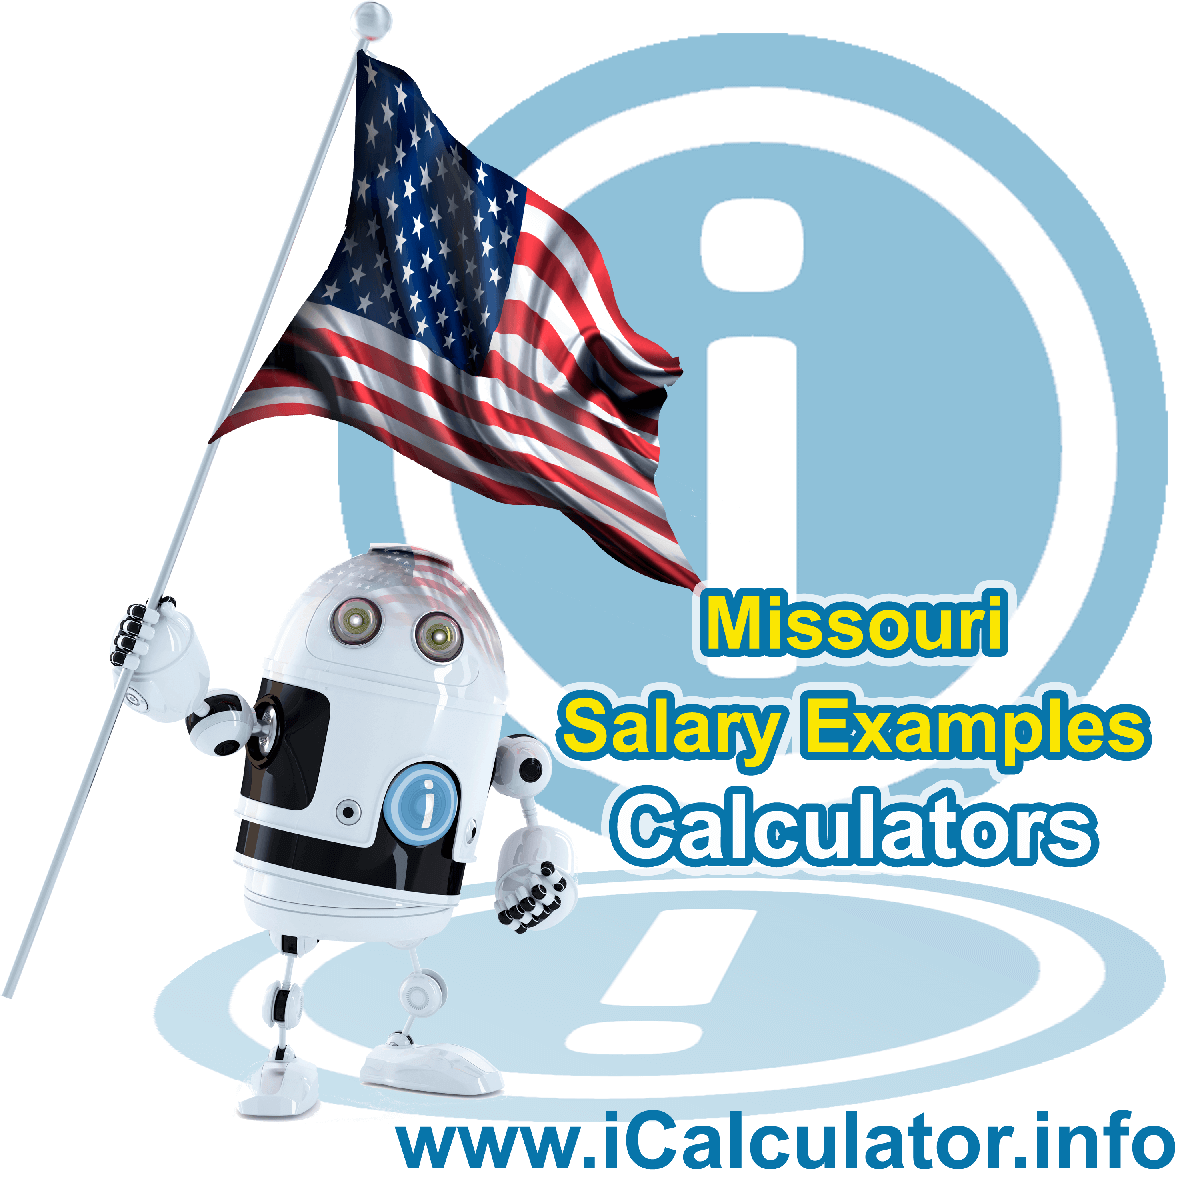 Missouri Salary Example for $100.00 in 2020 | iCalculator | $100.00 salary example for employee and employer paying Missouri State tincome taxes. Detailed salary after tax calculation including Missouri State Tax, Federal State Tax, Medicare Deductions, Social Security, Capital Gains and other income tax and salary deductions complete with supporting Missouri state tax tables